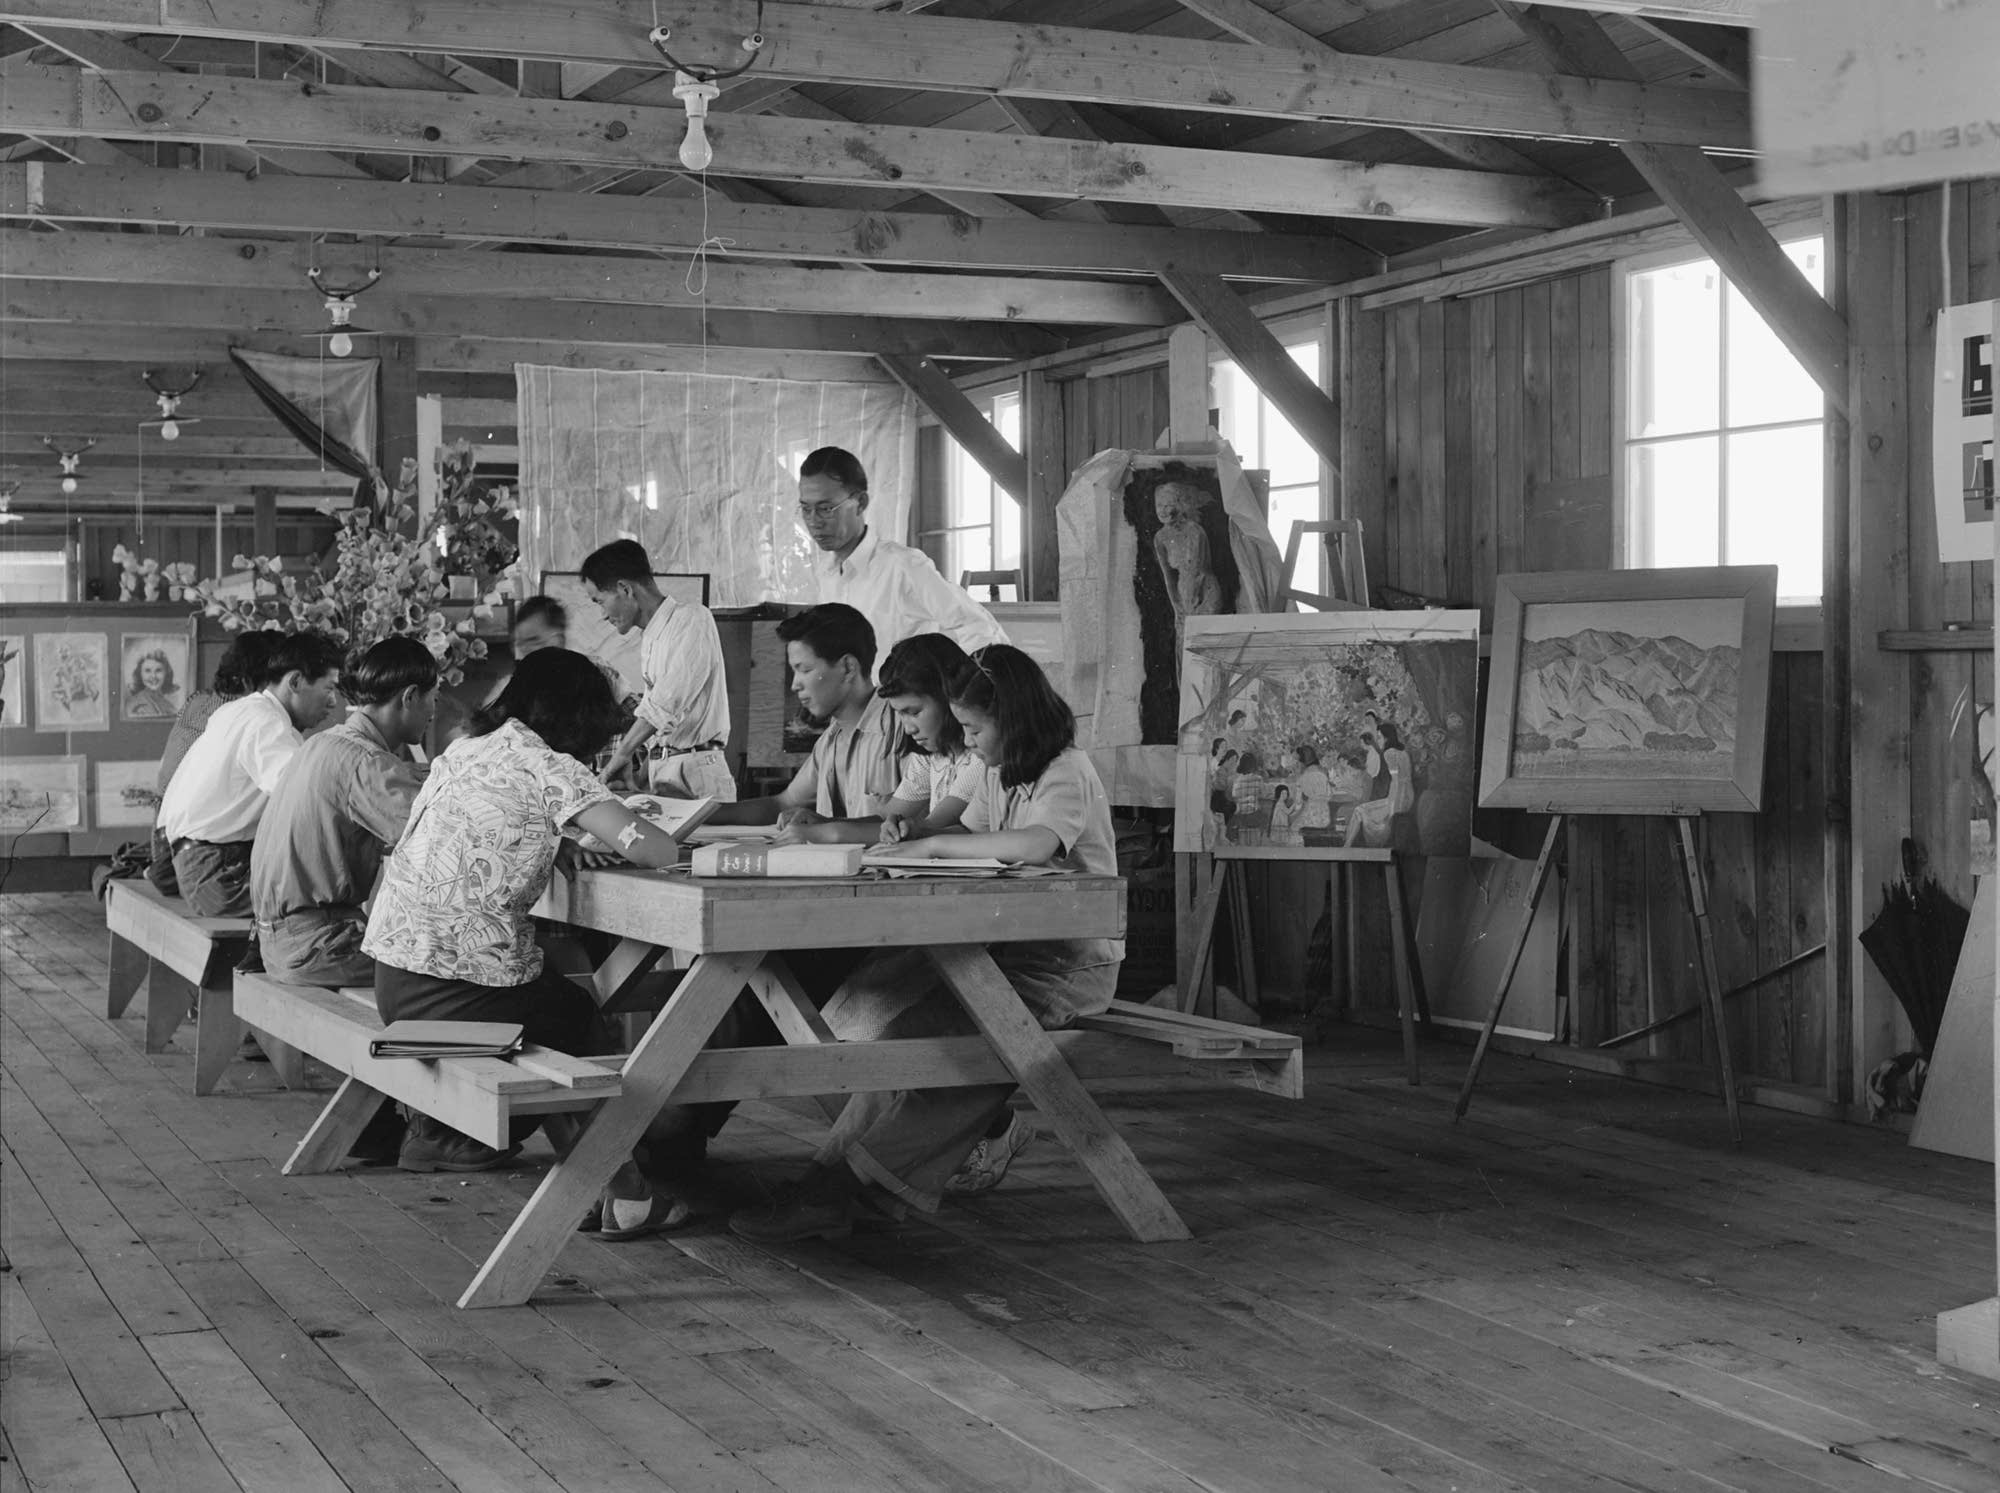 Manzanar Relocation Center, Art School